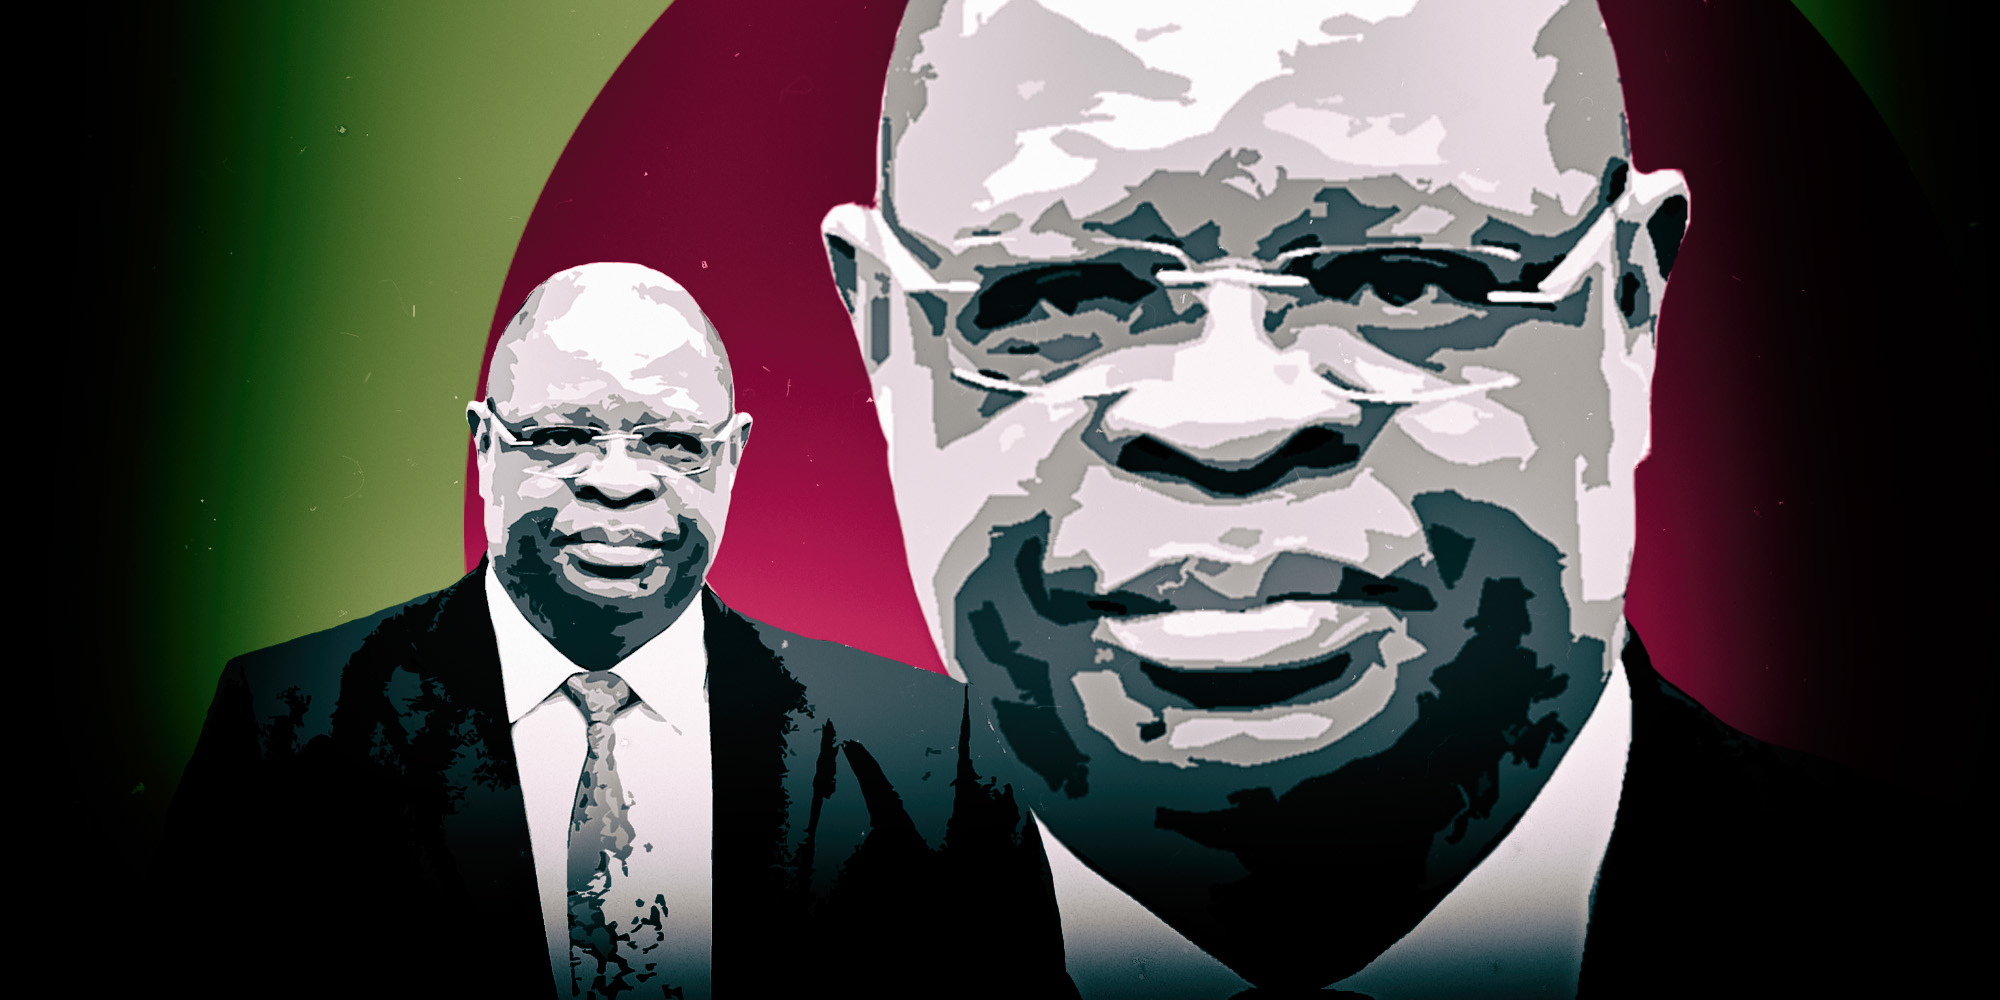 Newsflash: Full commission report may not be made public, says judge - Daily Maverick